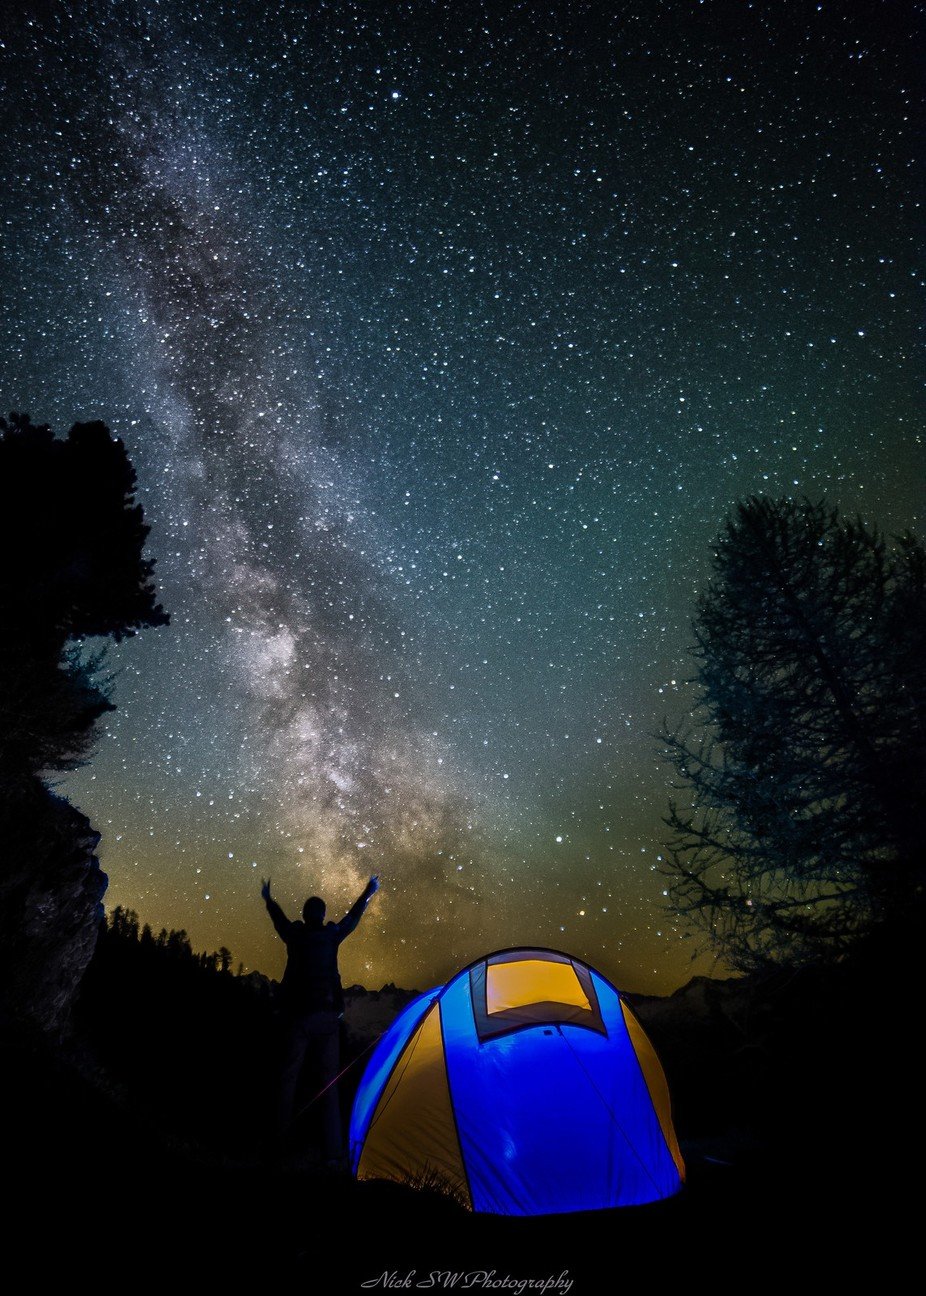 Piora Nightsky by NickSW - Outdoor Camping Photo Contest